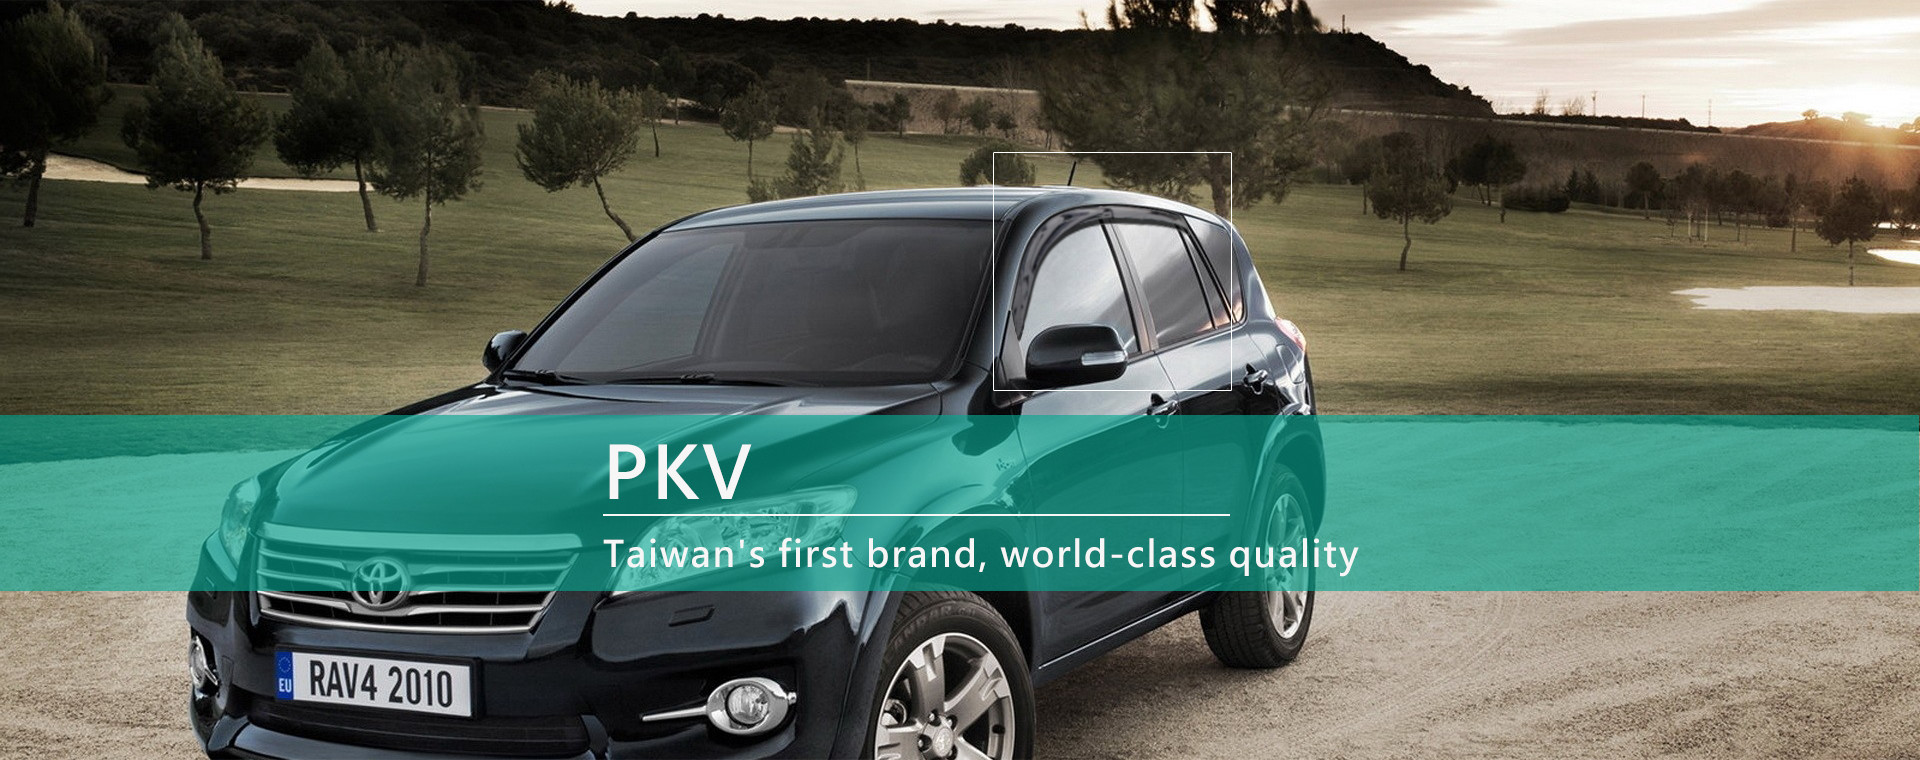 PKV - Taiwan's first brand, world-class quality